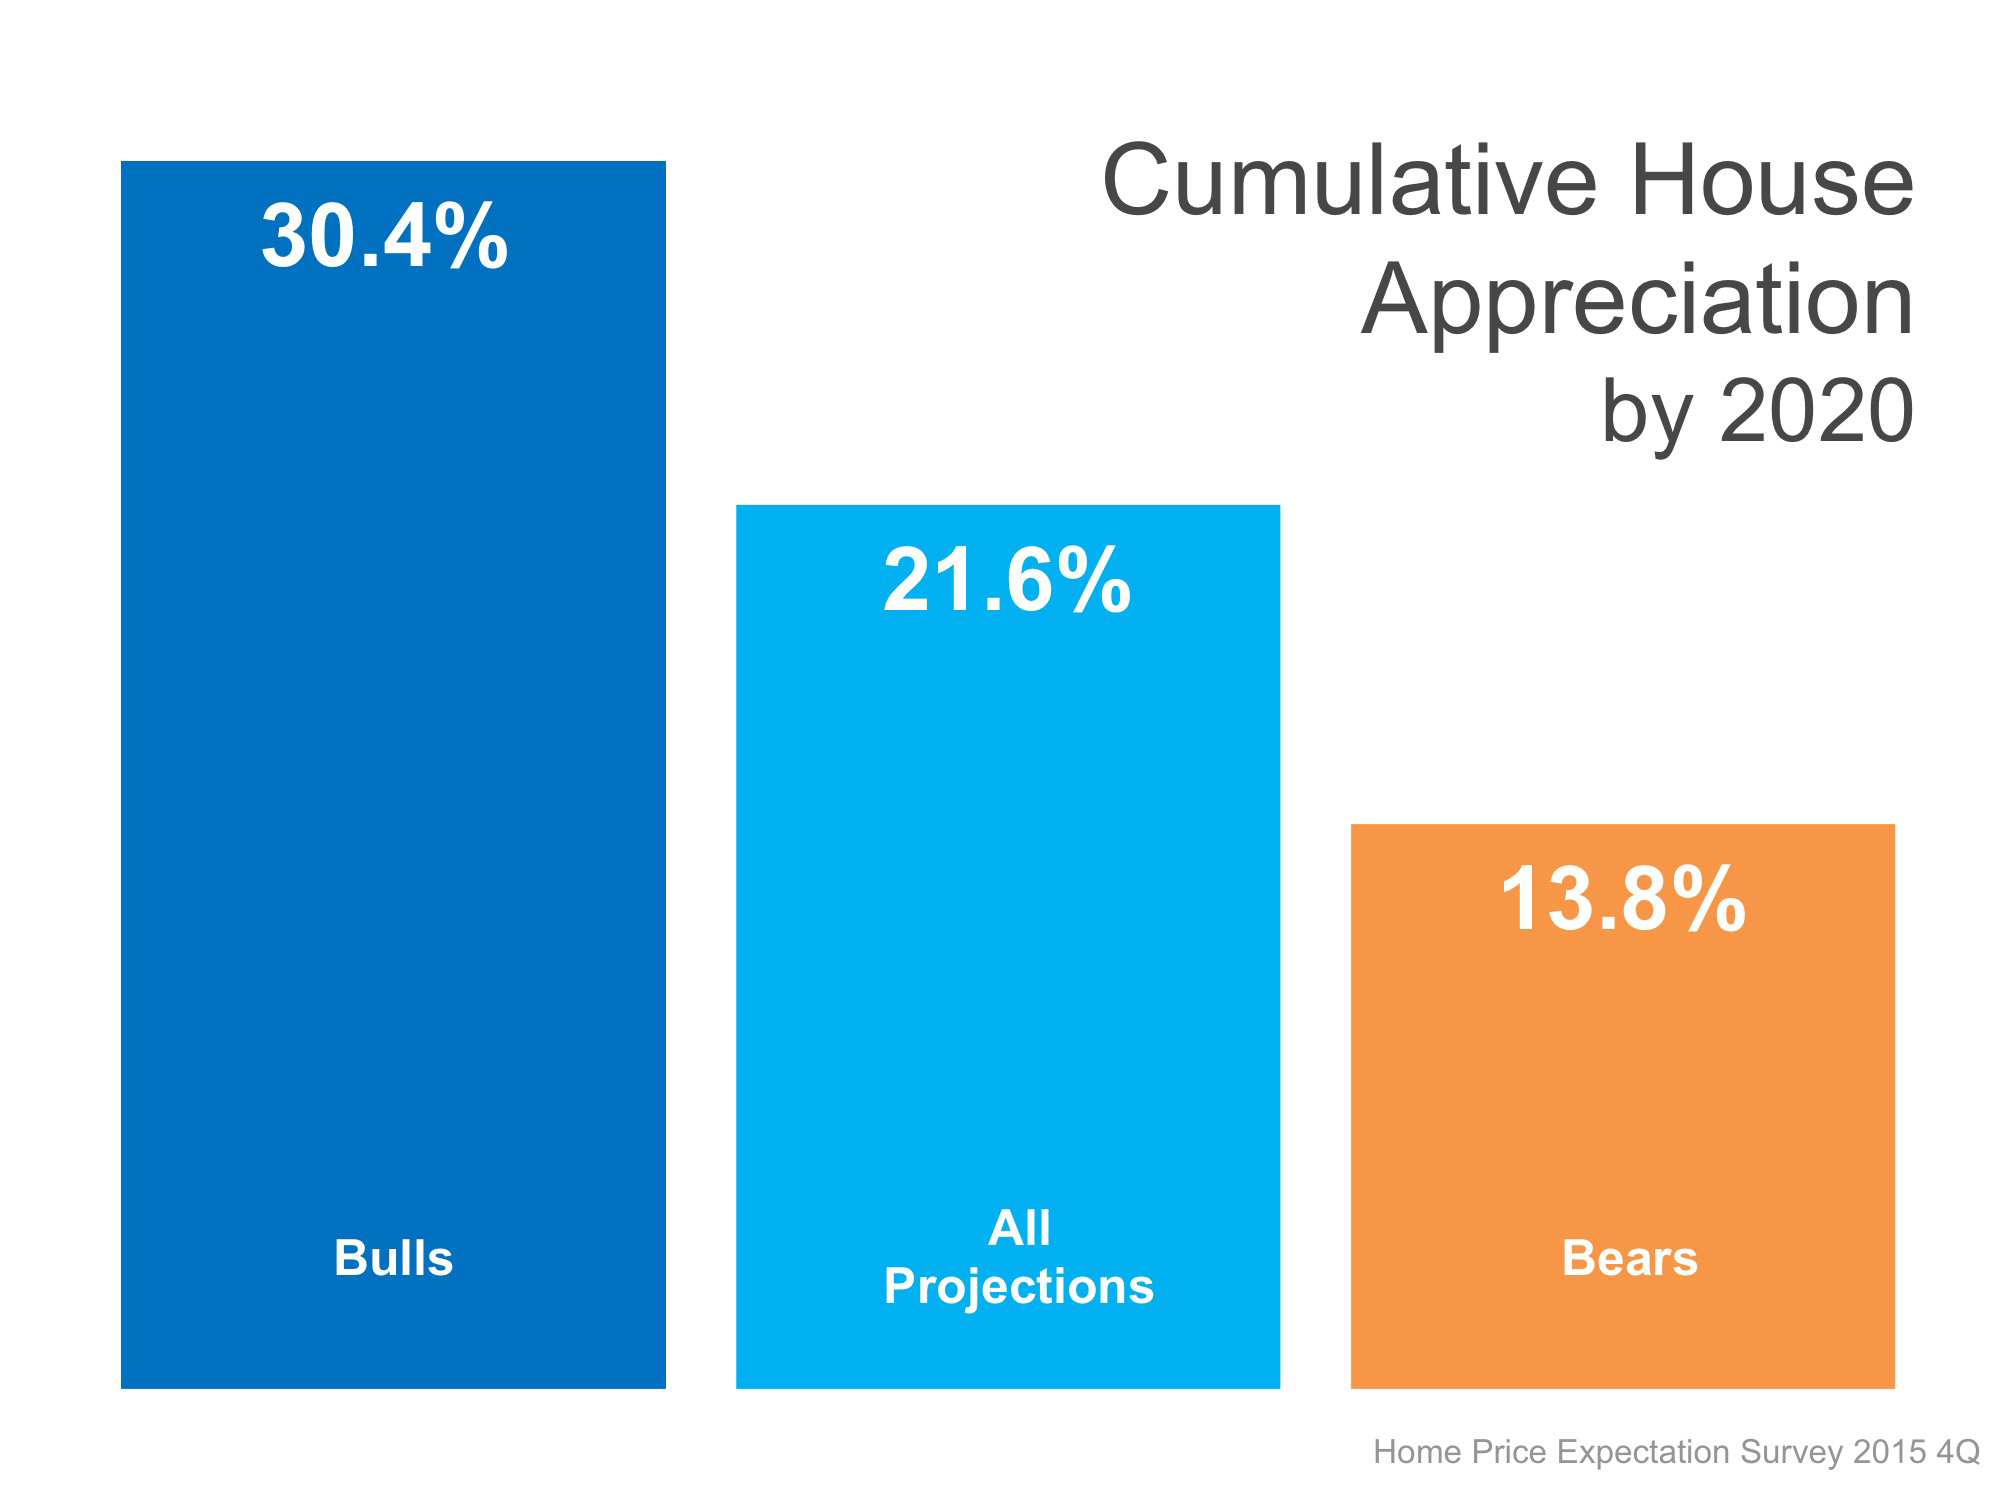 HPES Cumulative Appreciation by 2020 | Simplifying The Market